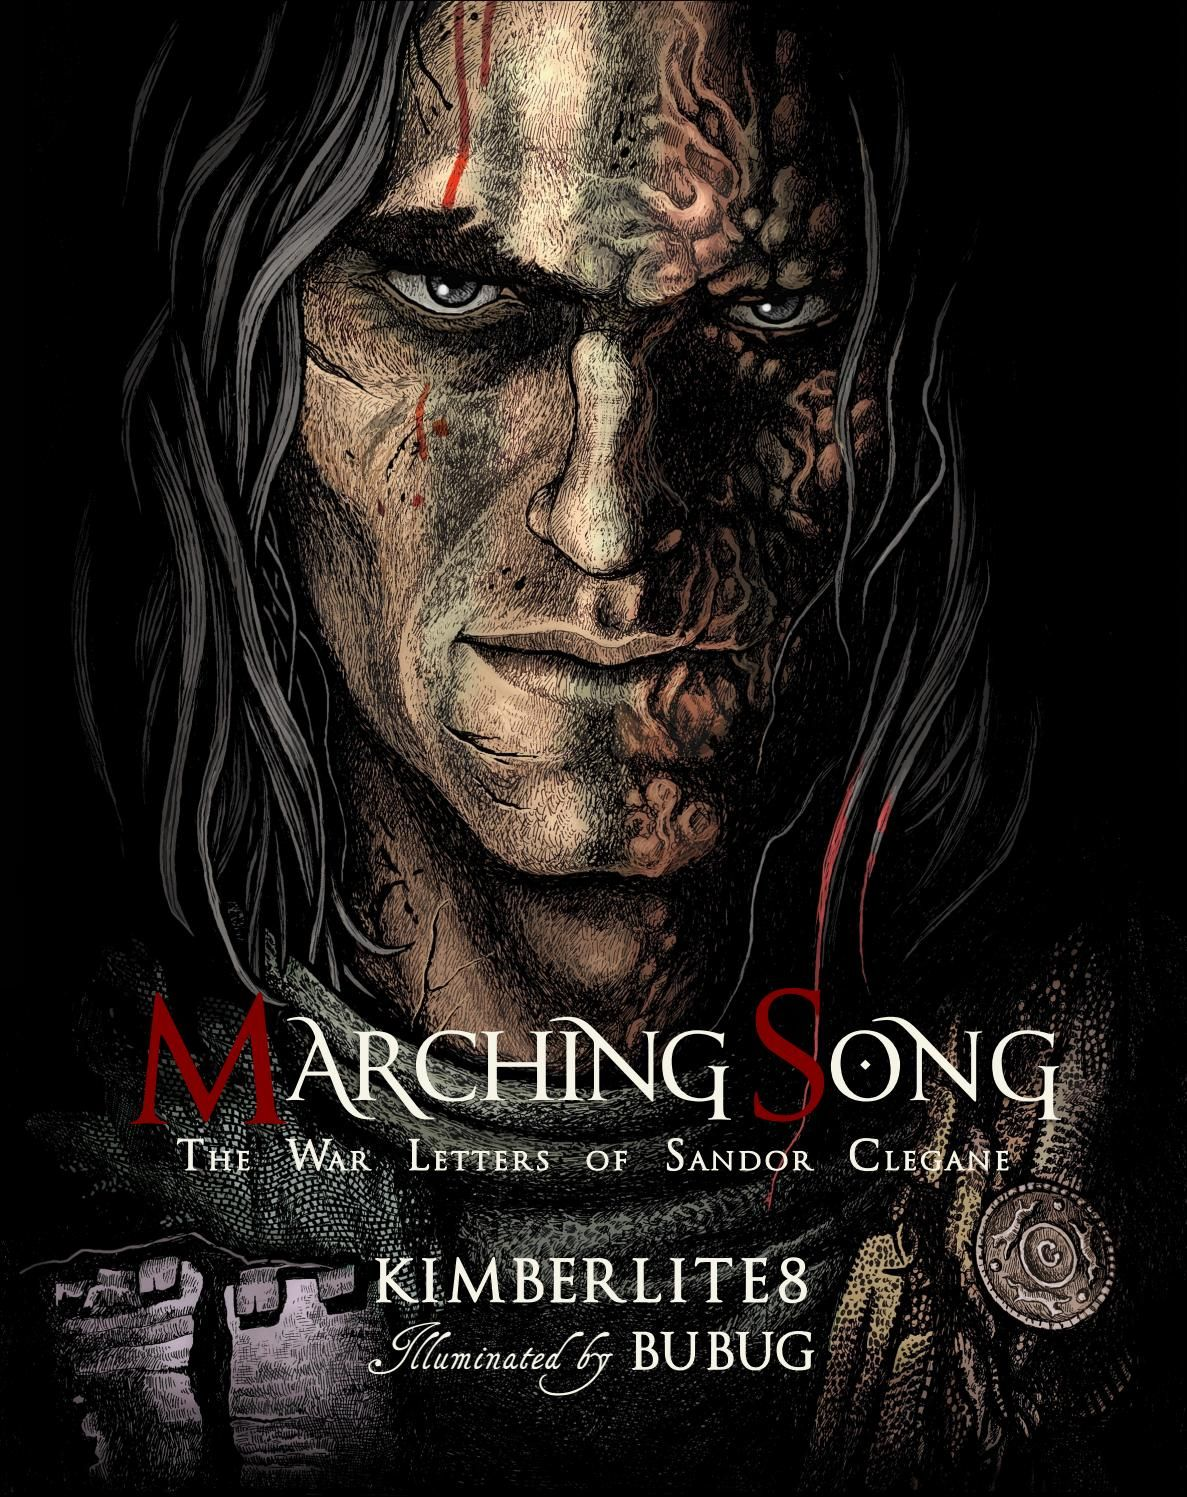 Marching Song Songs Mommy Activities A Song Of Ice And Fire